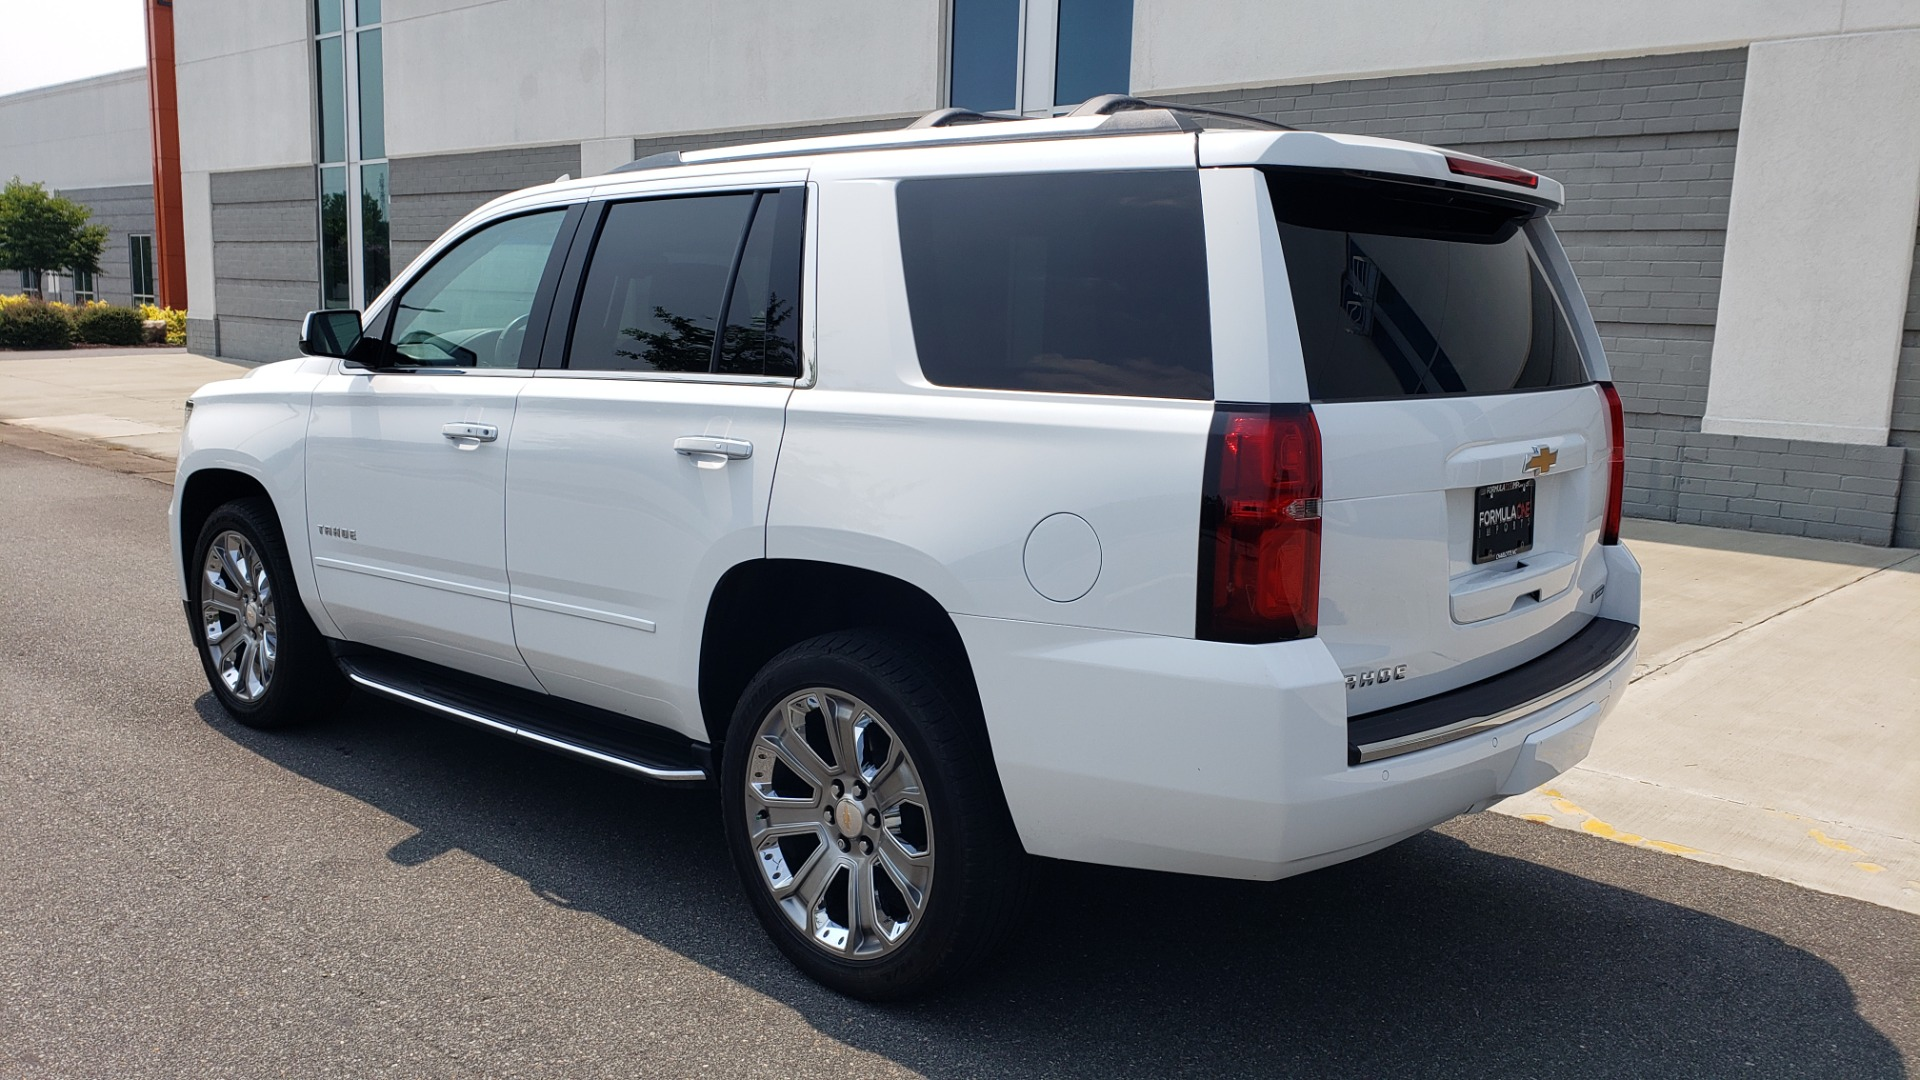 Used 2018 Chevrolet TAHOE PREMIER 4WD / NAV / SUNROOF / BOSE / 3-ROW / HUD / REARVIEW for sale $63,995 at Formula Imports in Charlotte NC 28227 7